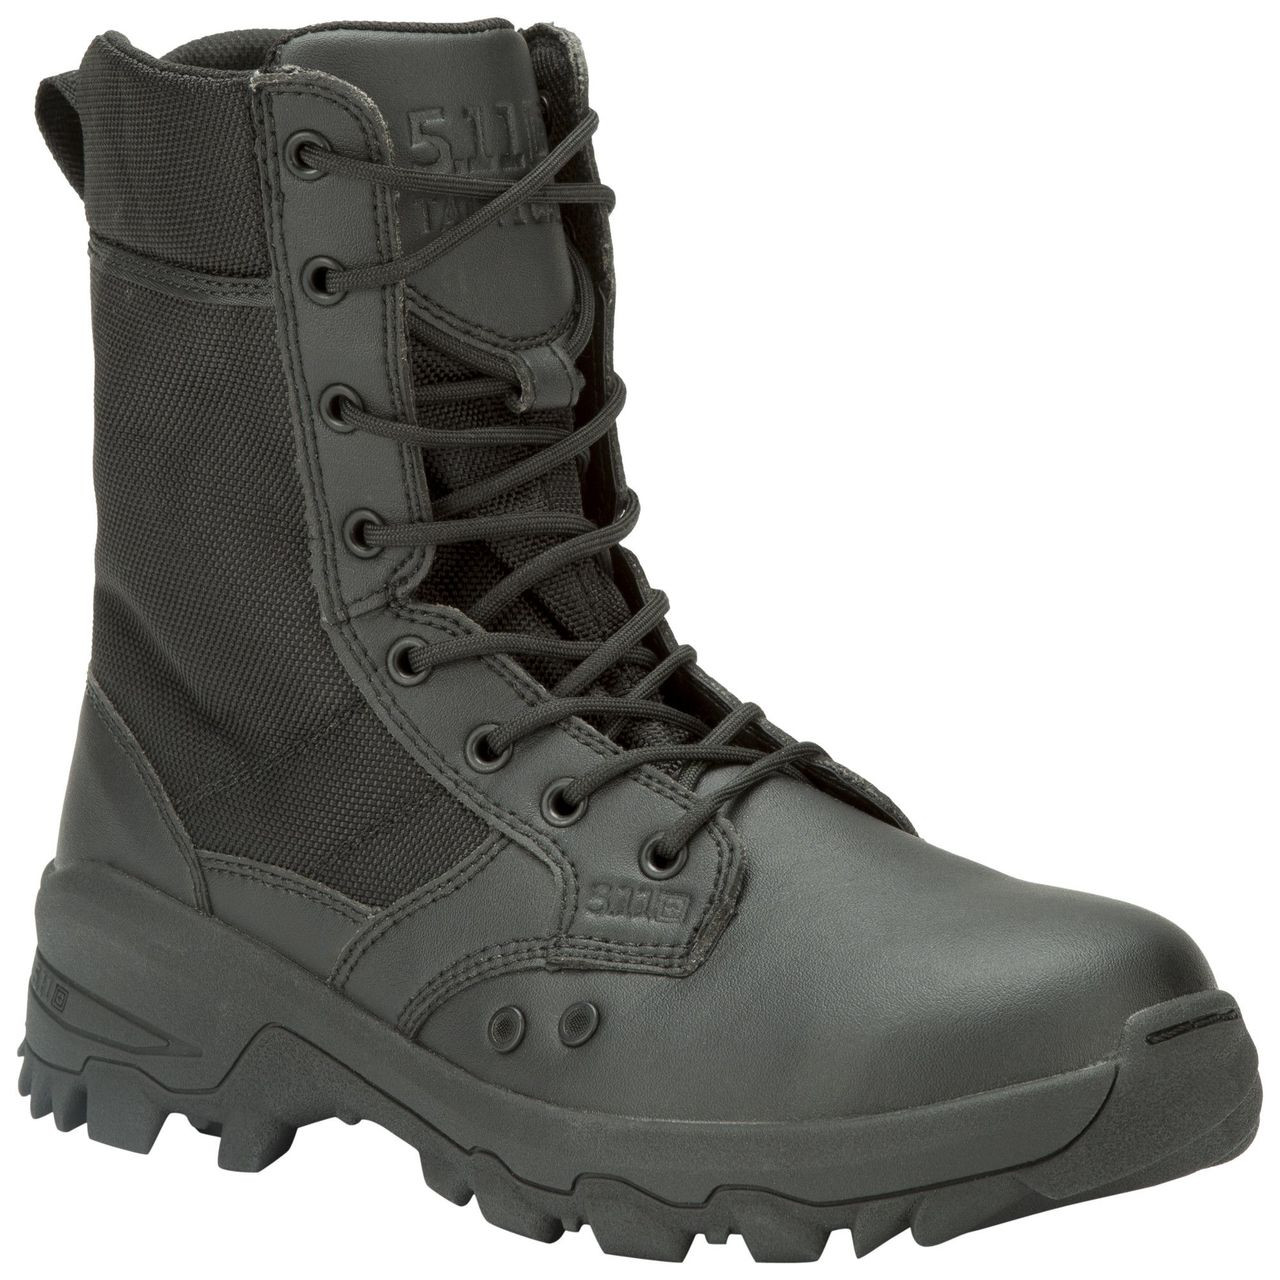 5.11 SPEED 3.0 RAPIDDRY TACTICAL JUNGLE BOOTS 12339 /  BLACK